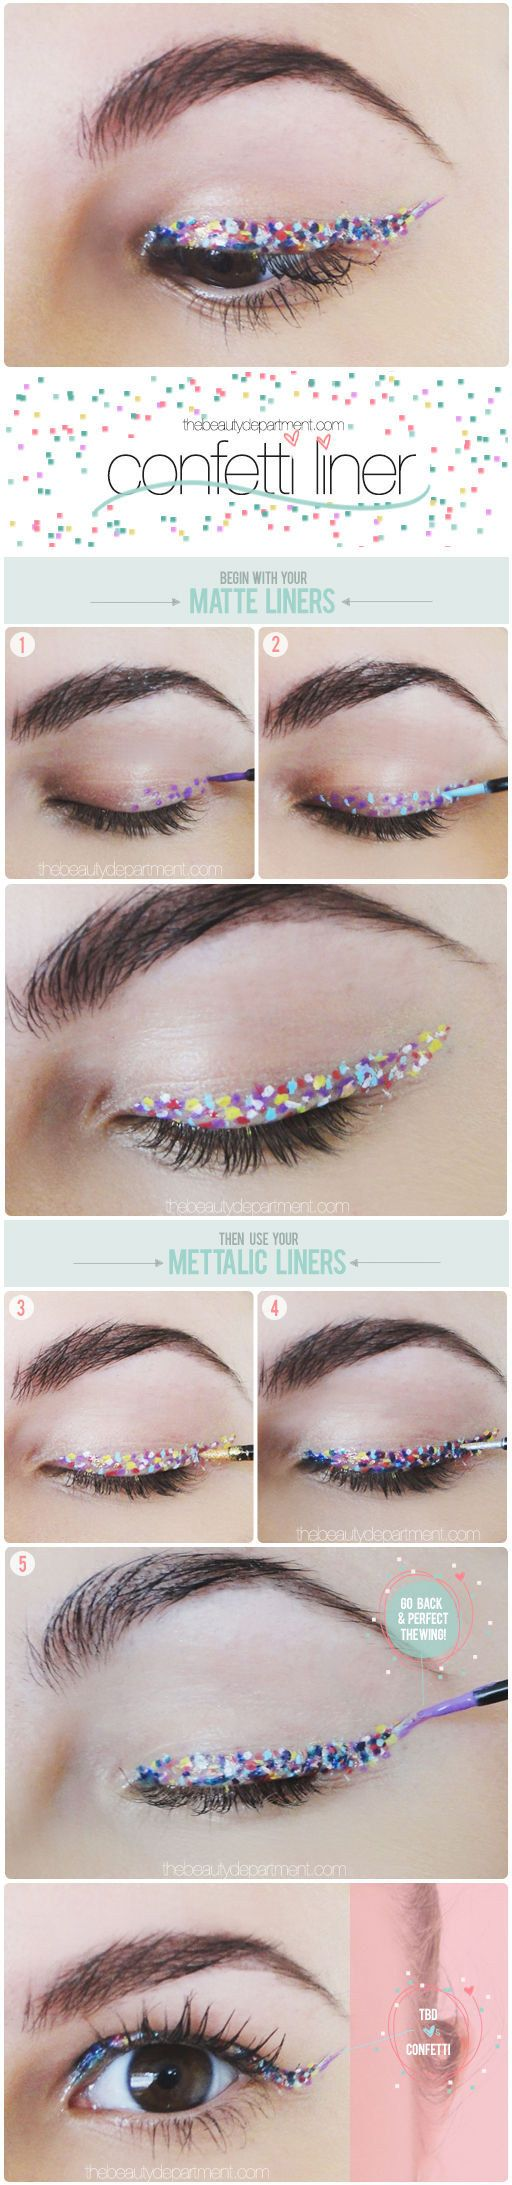 Throw an eyelid party with this confetti liner. | 17 Insanely Beautiful Makeup Looks That Aren't Just Another Smokey Eye